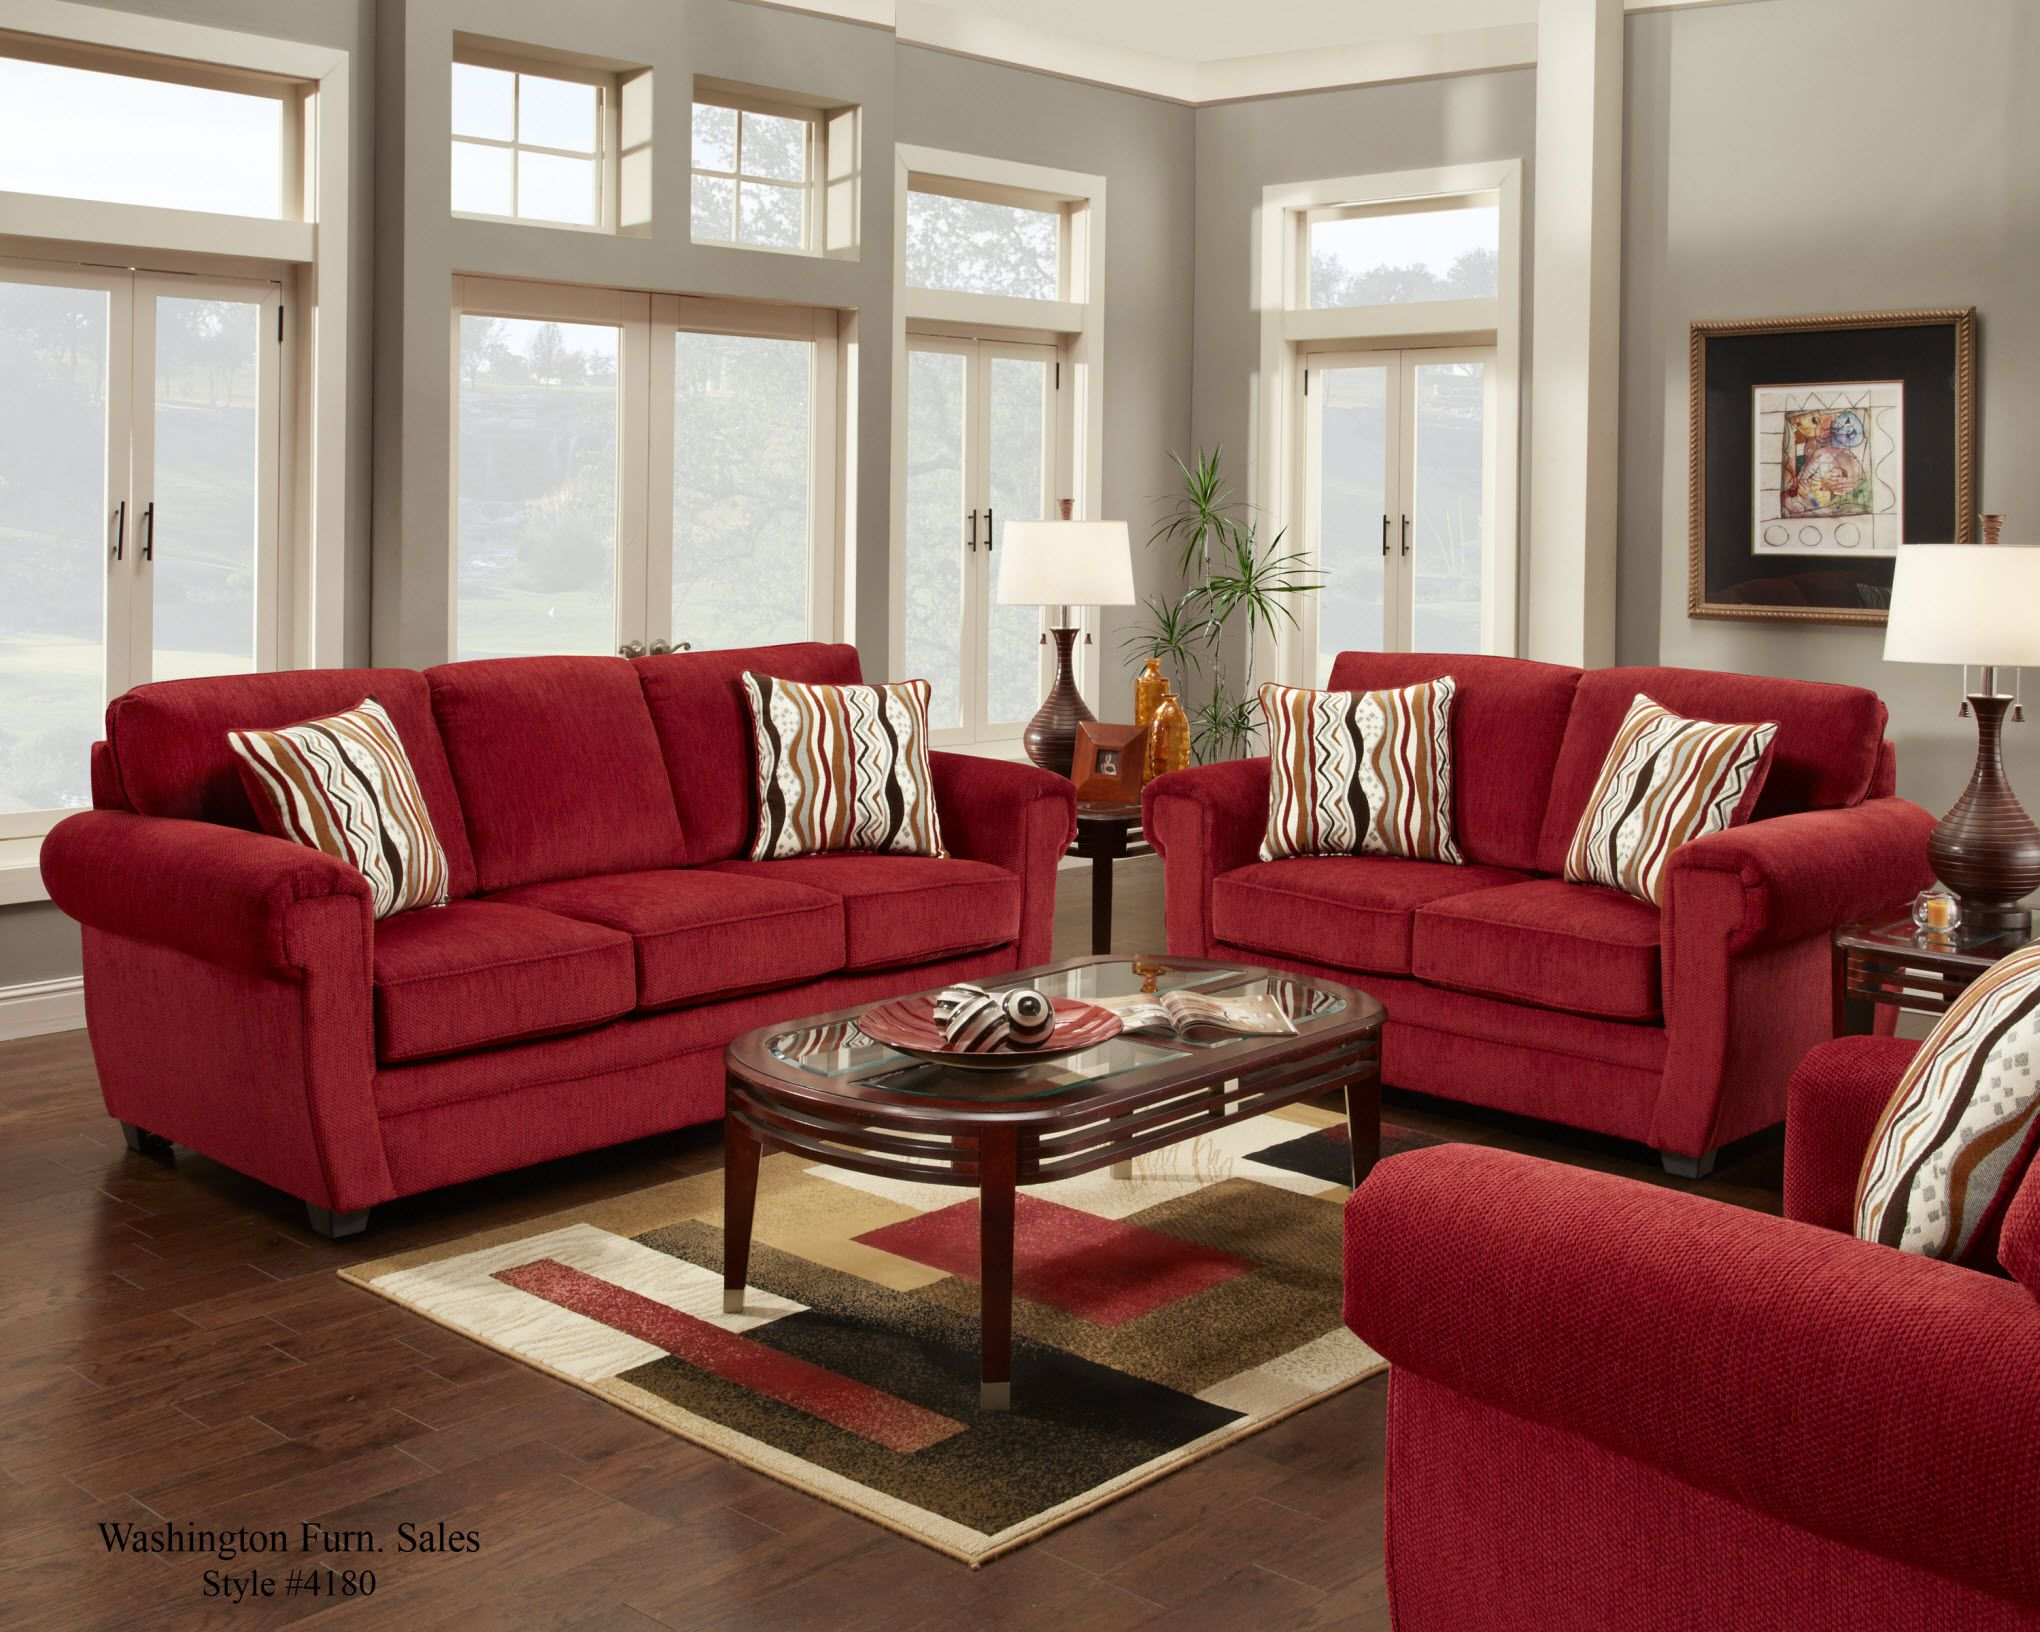 4180 washington samson red sofa and loveseat www furnitureurban com